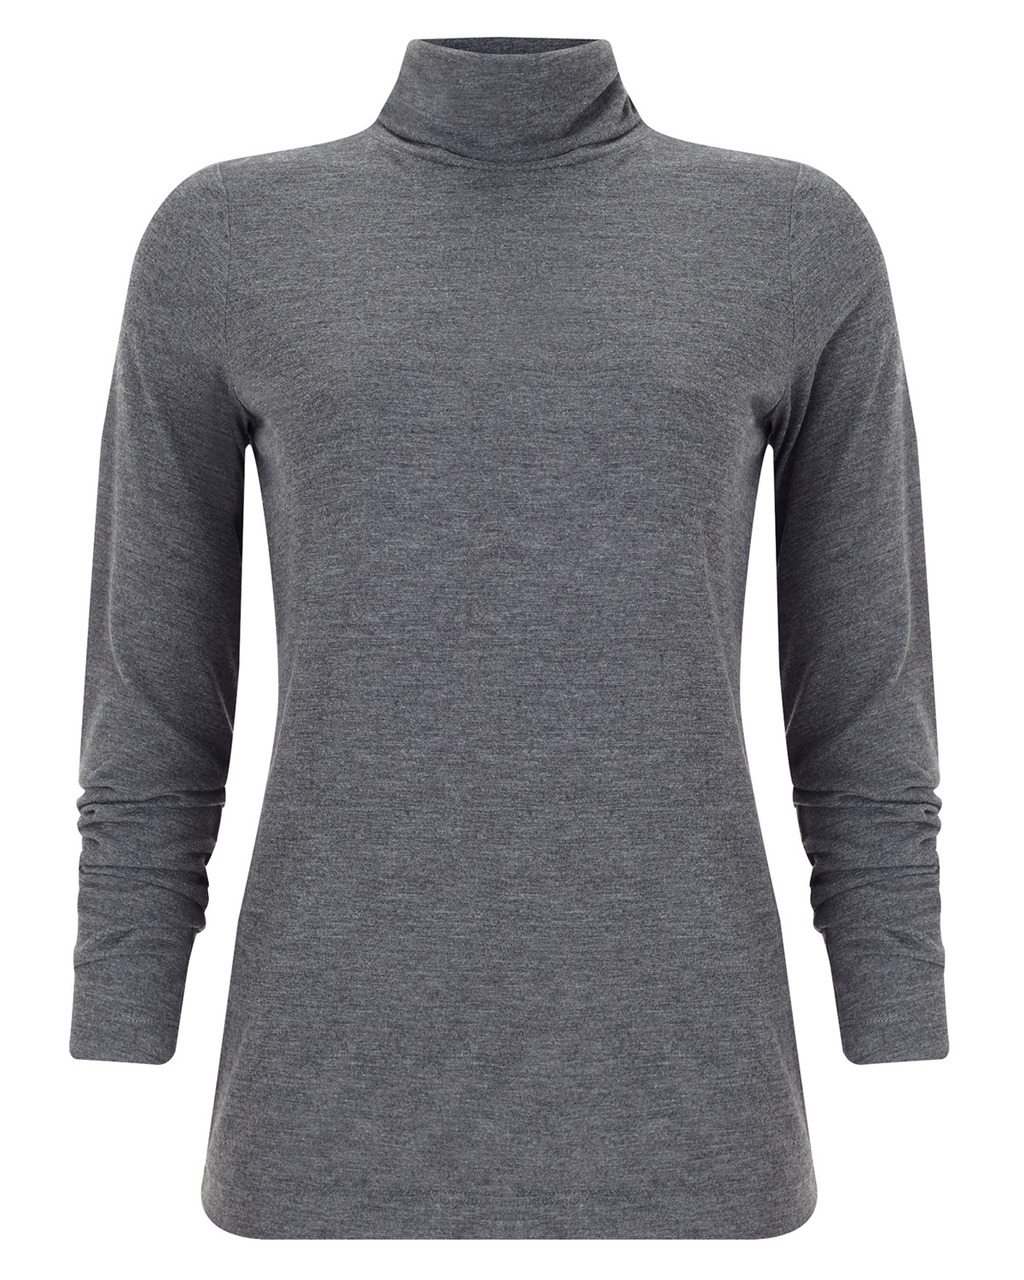 Ginia Roll Neck Top - pattern: plain; style: t-shirt; neckline: roll neck; predominant colour: mid grey; occasions: casual, creative work; length: standard; fibres: polyester/polyamide - mix; fit: body skimming; sleeve length: 3/4 length; sleeve style: standard; pattern type: fabric; texture group: jersey - stretchy/drapey; season: a/w 2015; wardrobe: basic